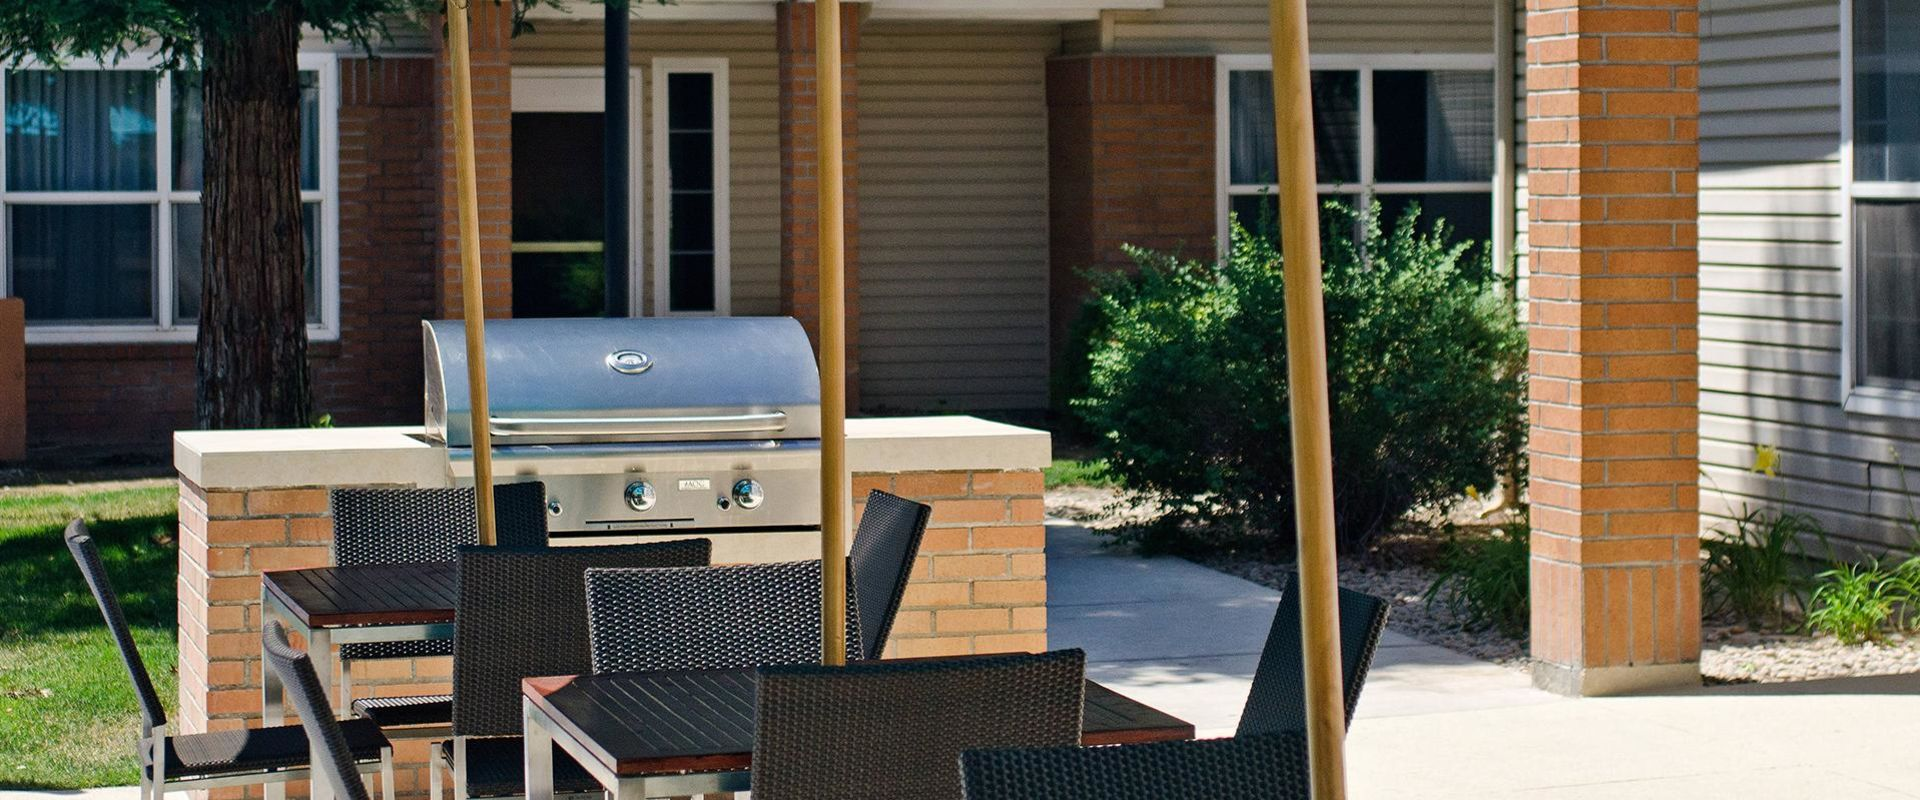 Outdoor Barbecue Area